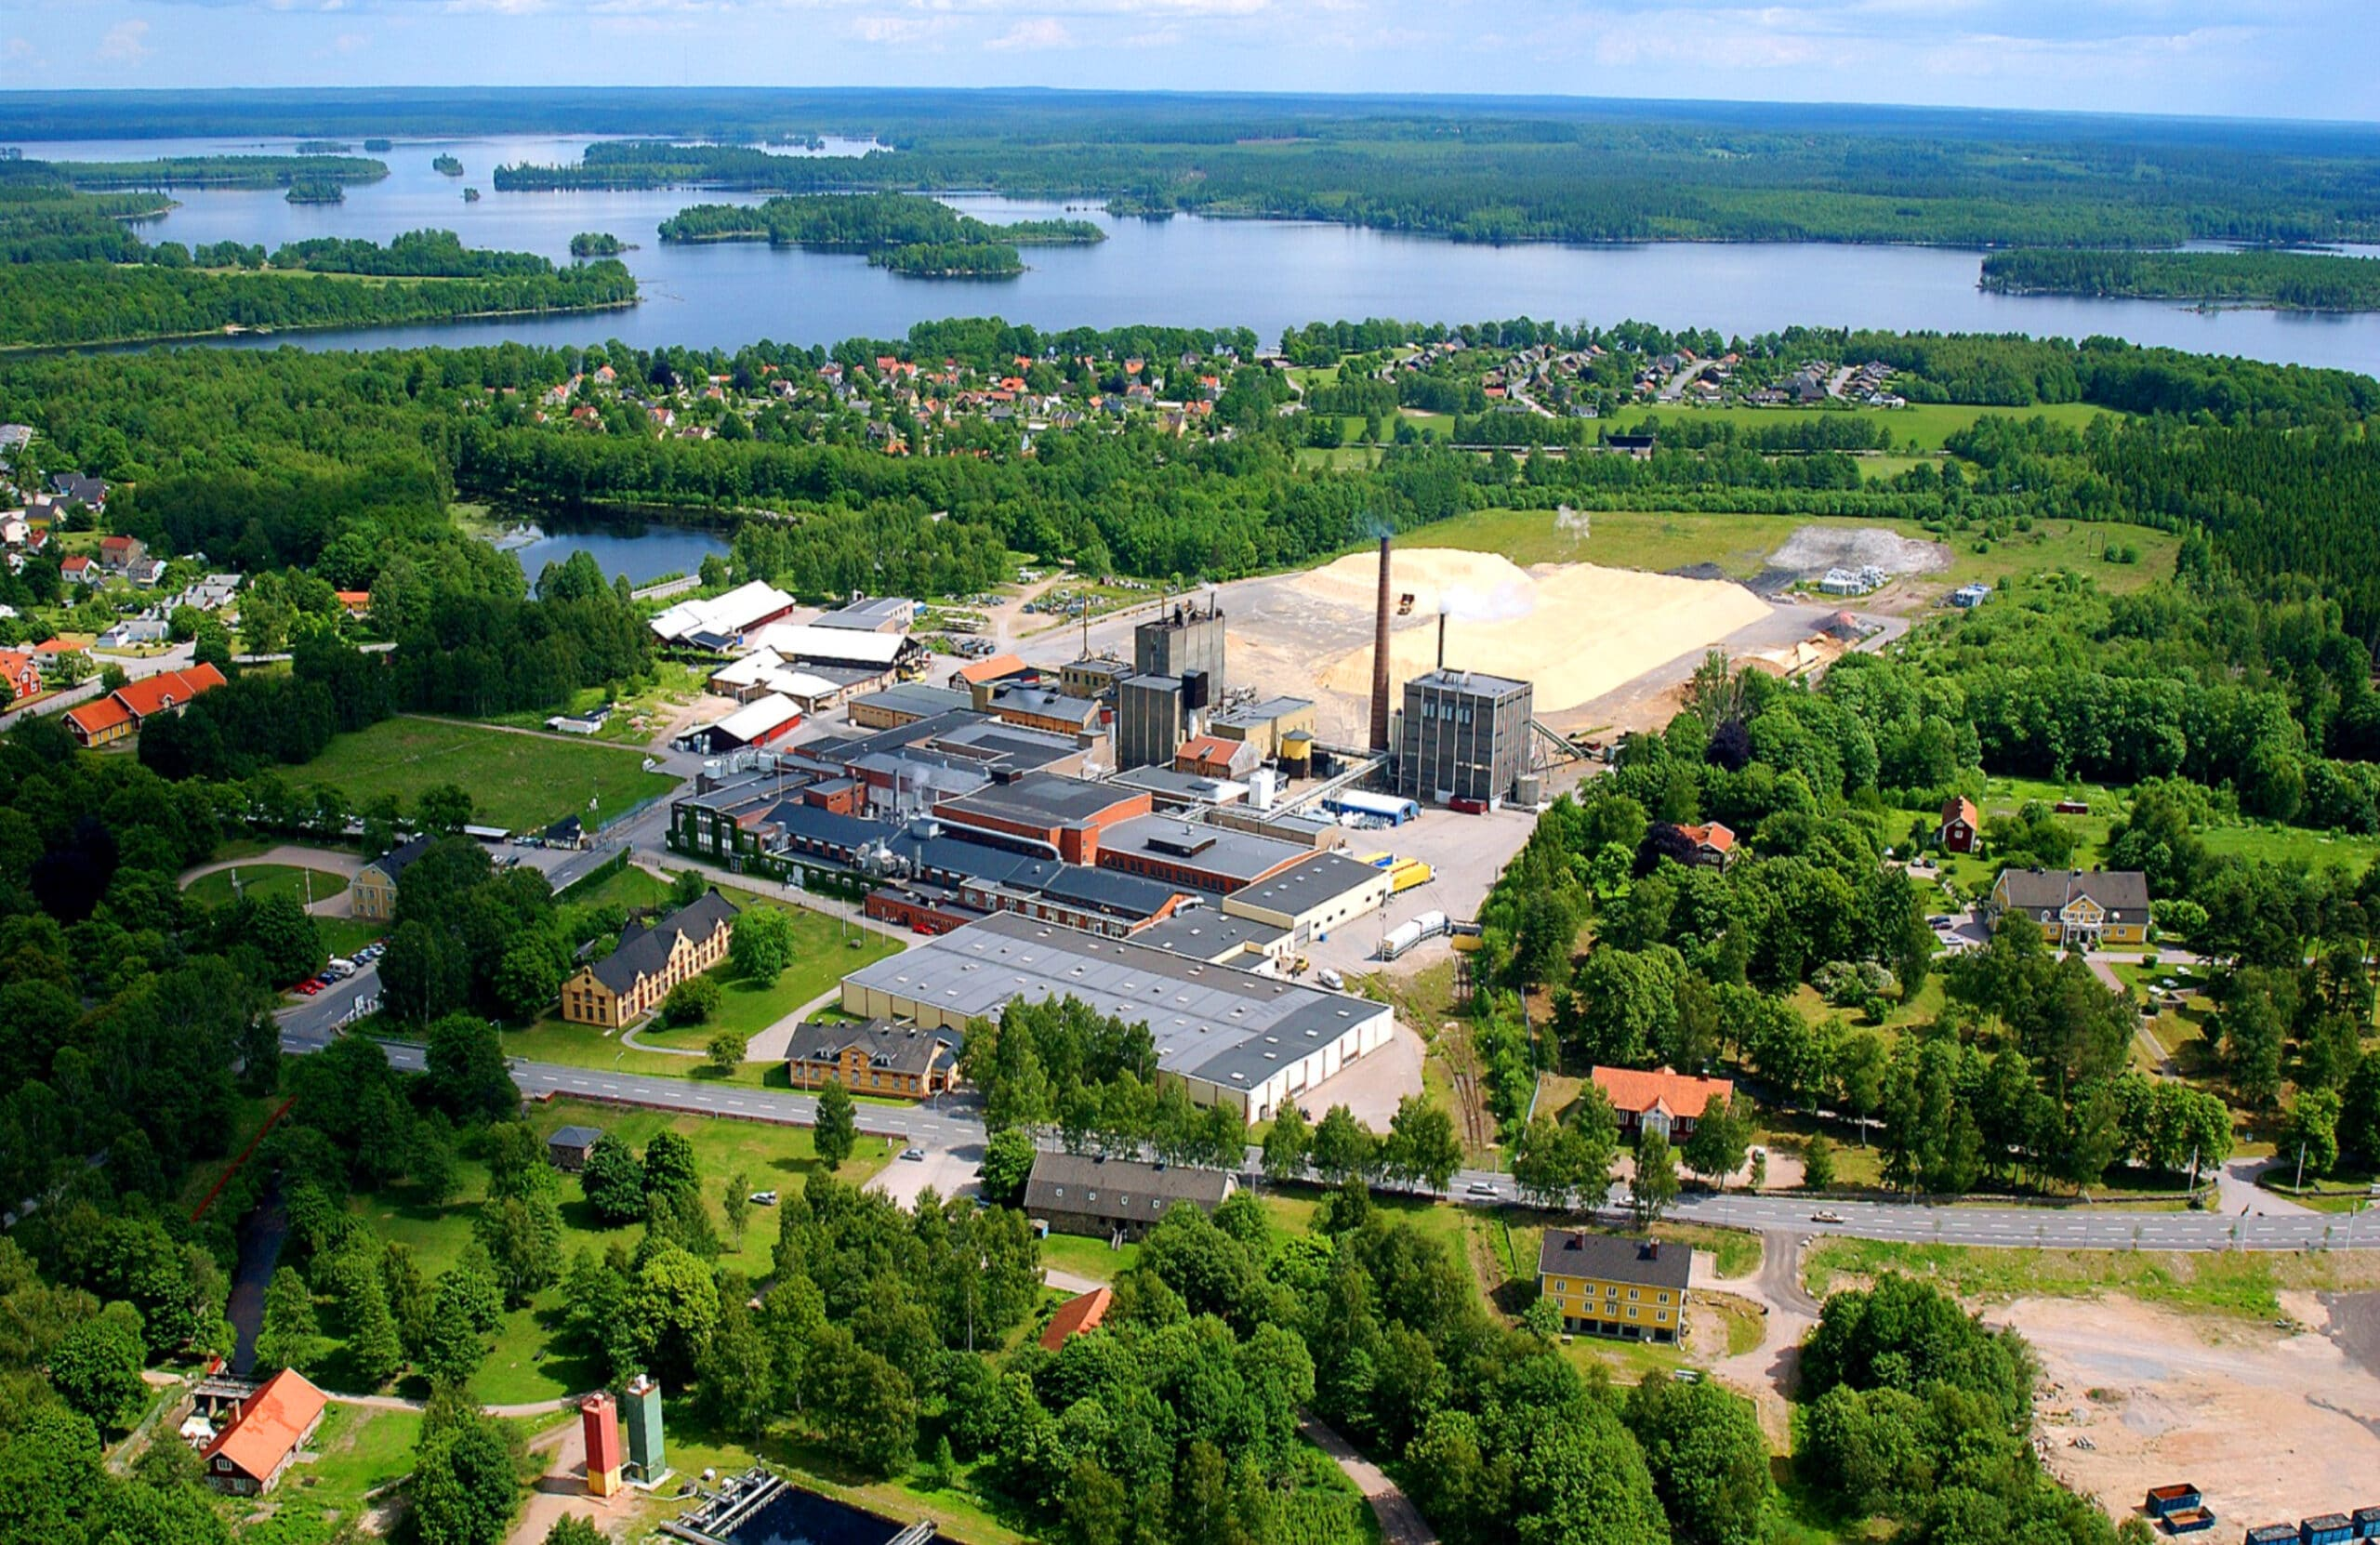 A birdseye view of Lessebo's industry